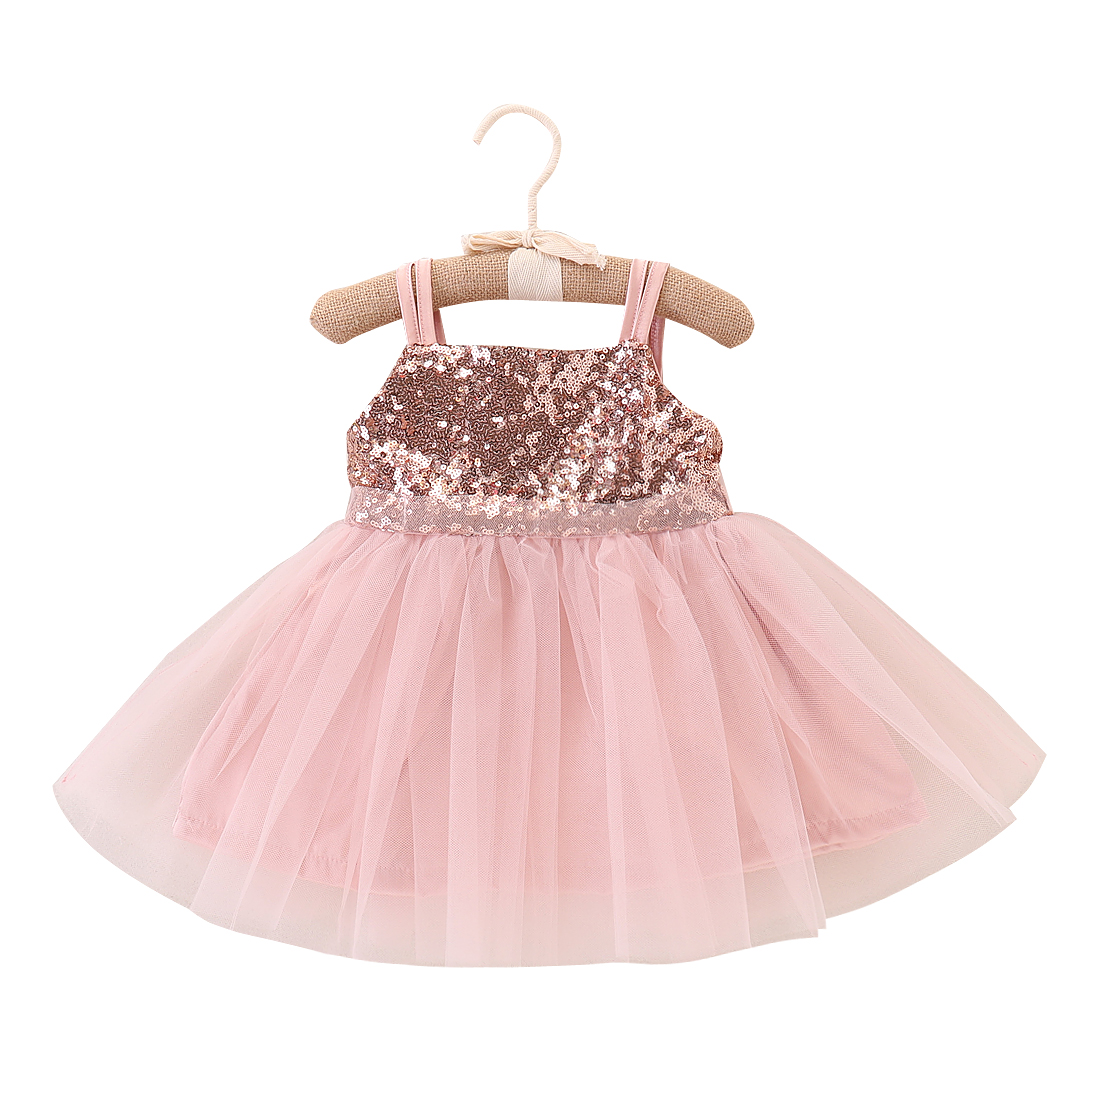 Toddler Baby Girls Summer Princess Fashion Dress Sleeveless Sequined Lace Patchwork Pink Knee-Length Tutu Dress Sundress 6M-5Y summer spring woman dress black white dog face pattern sequined beading chest black deep pink dress over knee cute cotton dress